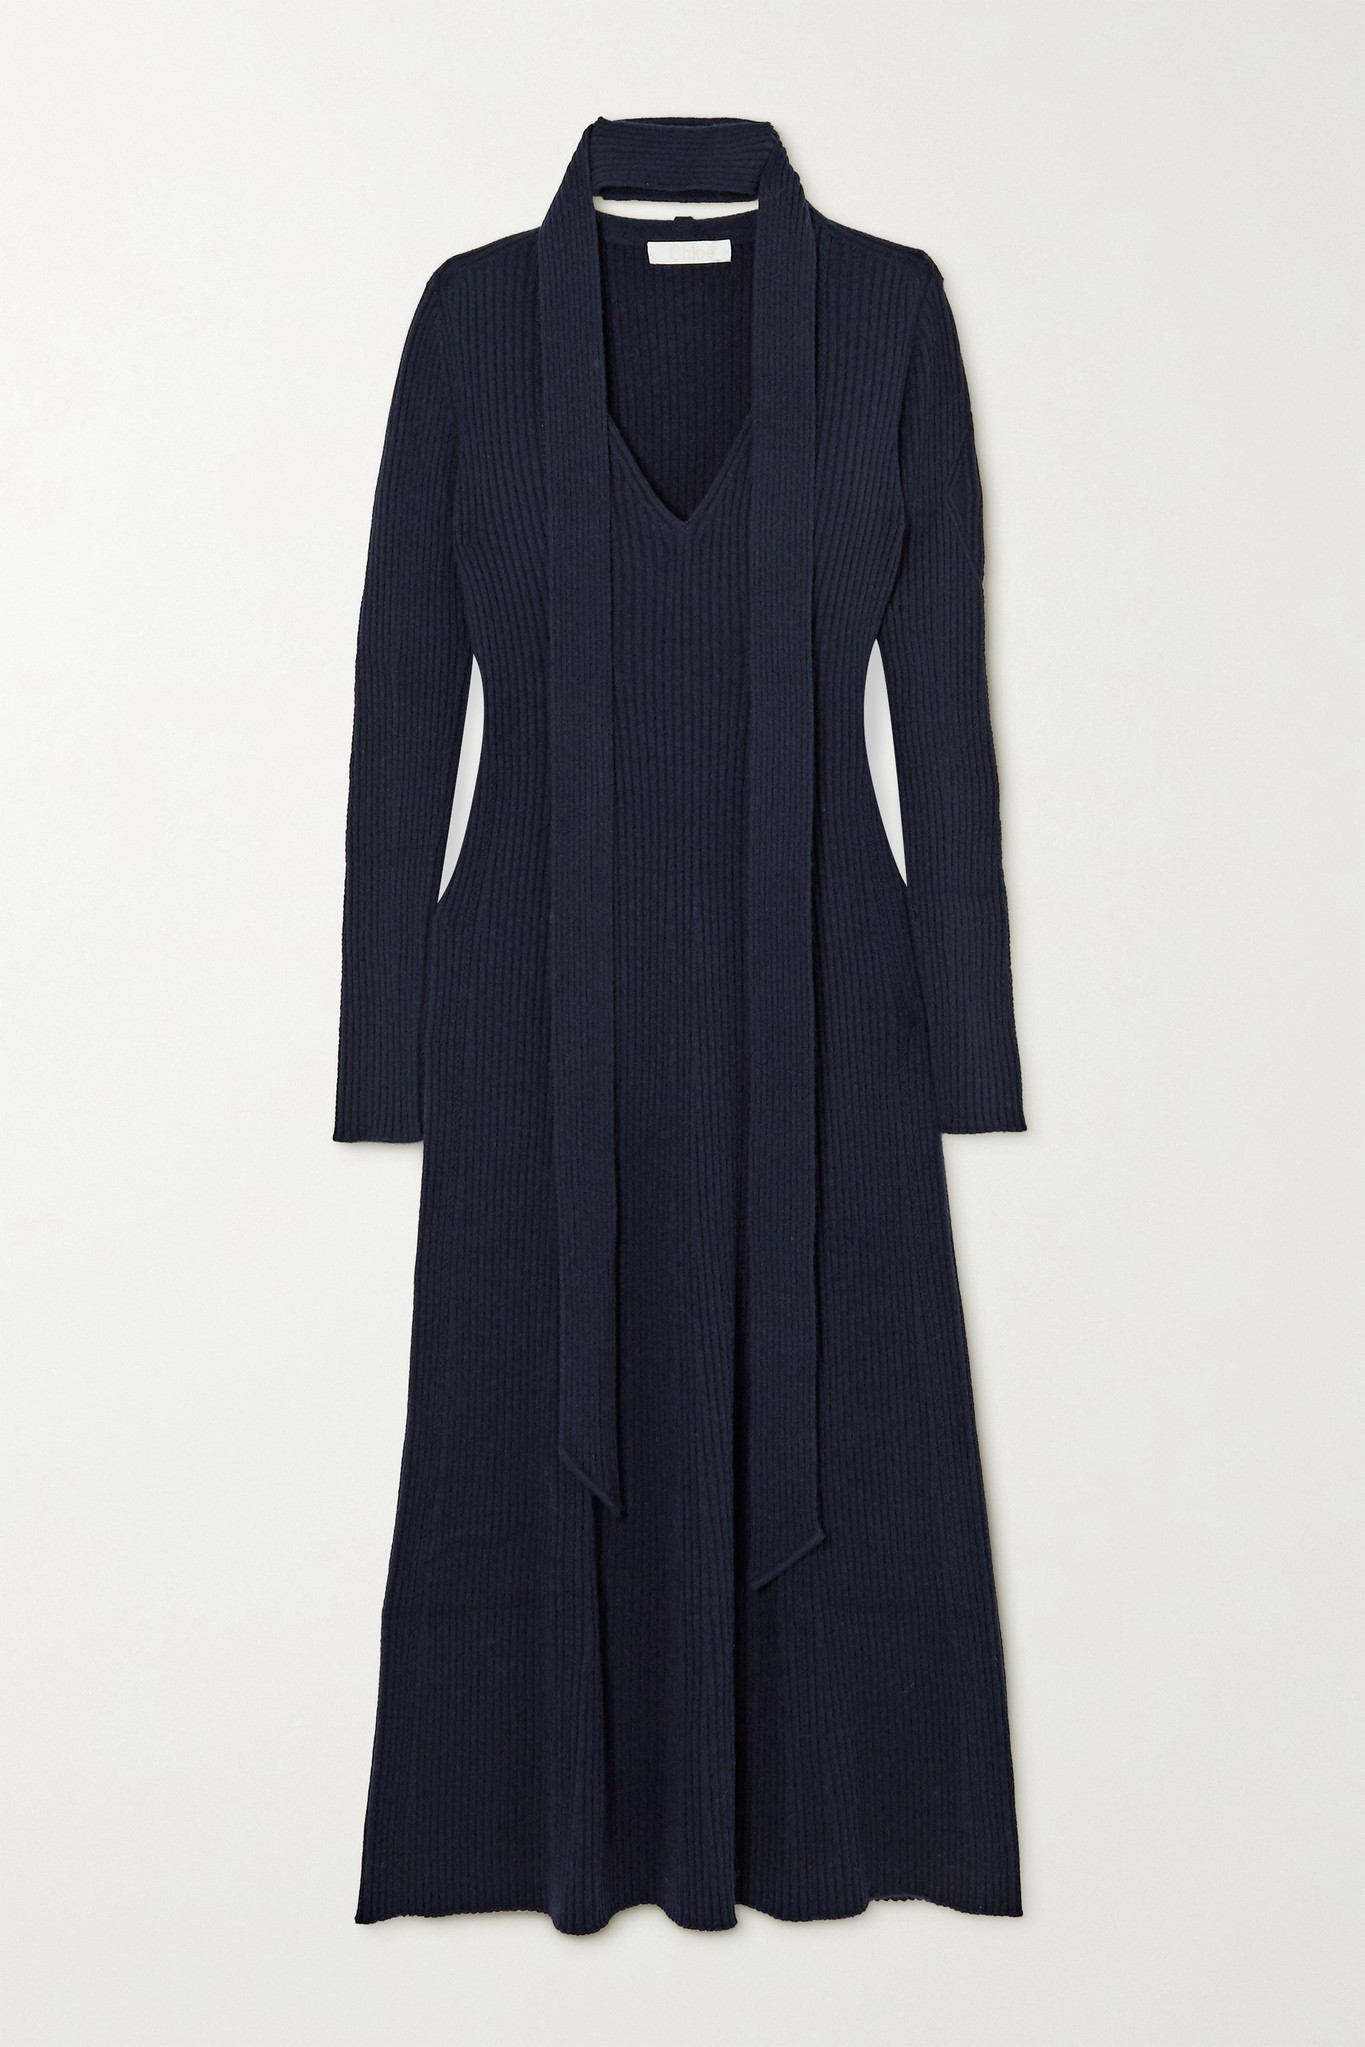 CHLOÉ - Tie-neck Ribbed Wool And Silk-blend Midi Dress - Blue - medium